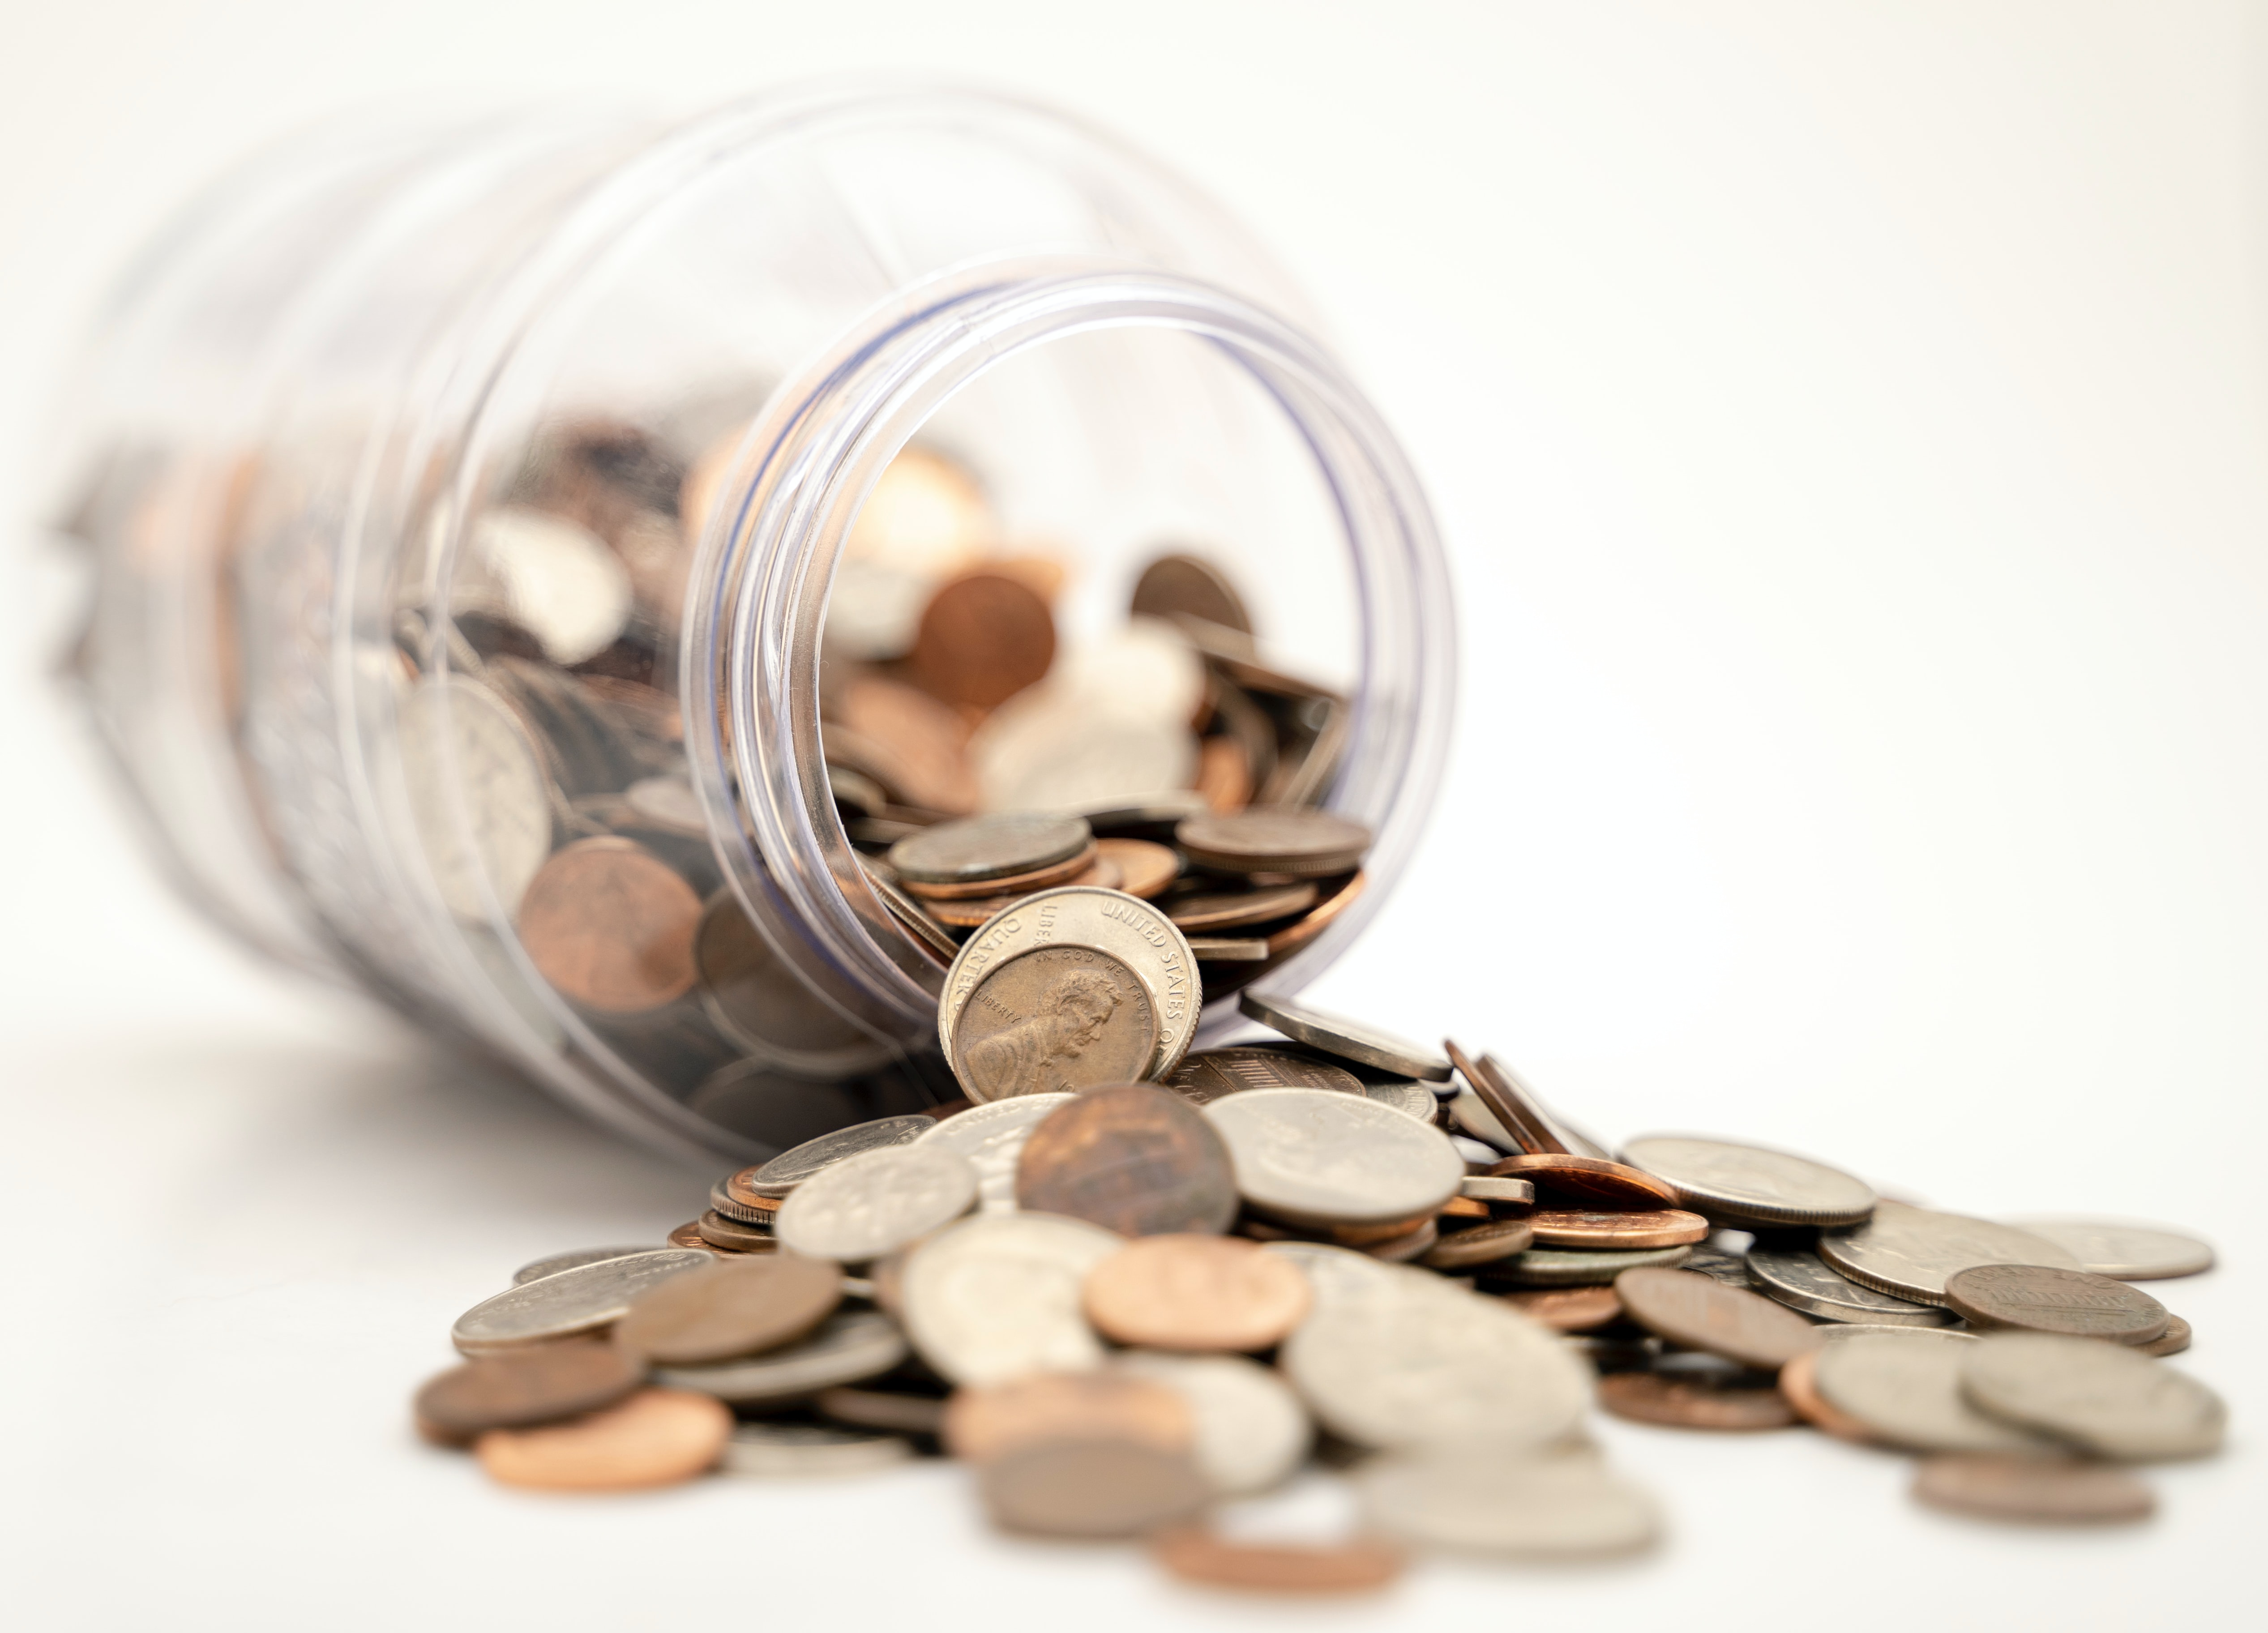 Are You a Newly Incorporated Business? Here Are 6 Financial Tips For You